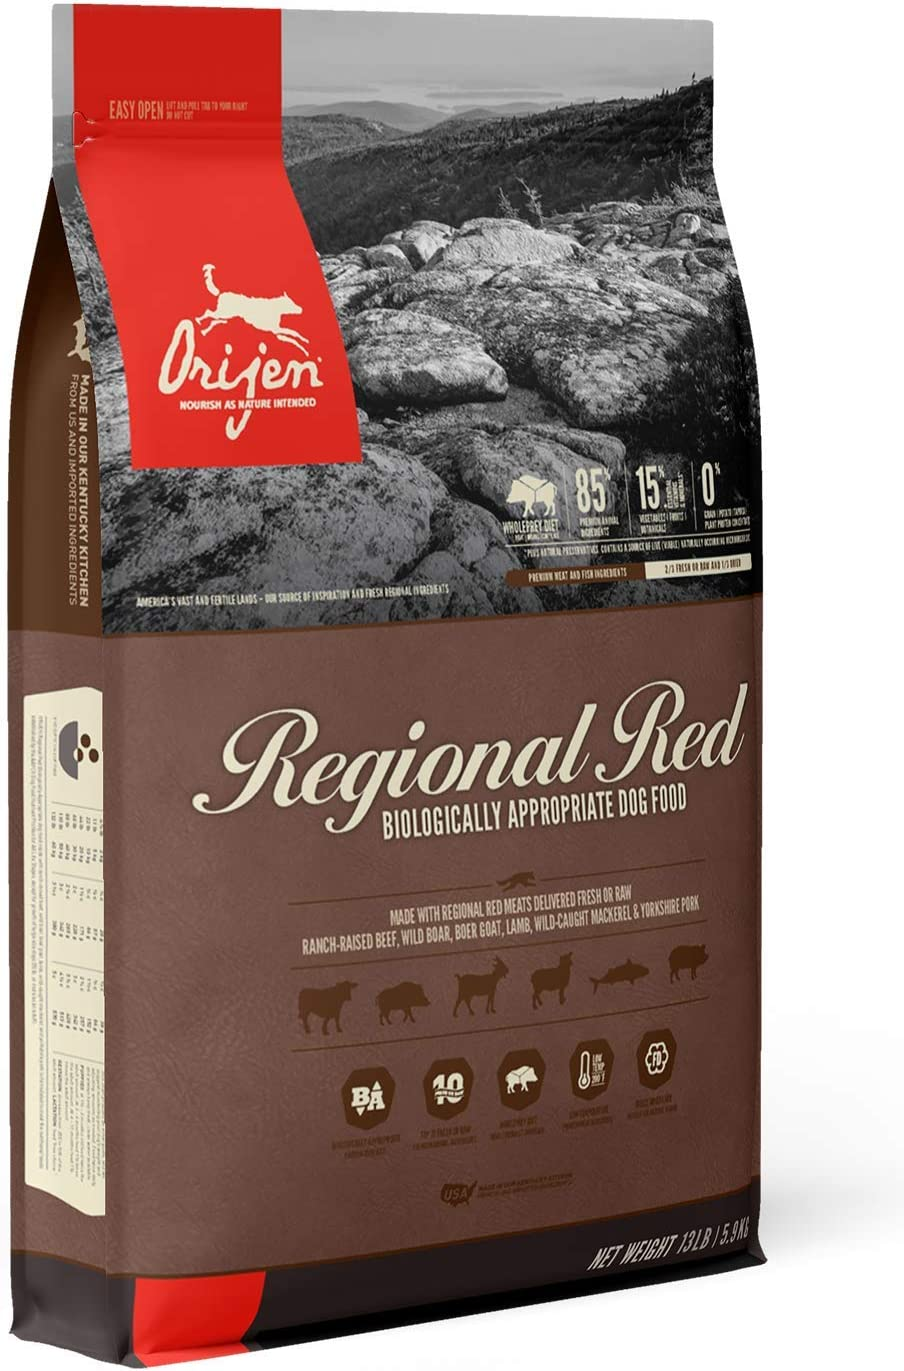 ORIJEN Dry Dog Food, Grain-Free, High Protein, Fresh and Raw Animal Ingredients